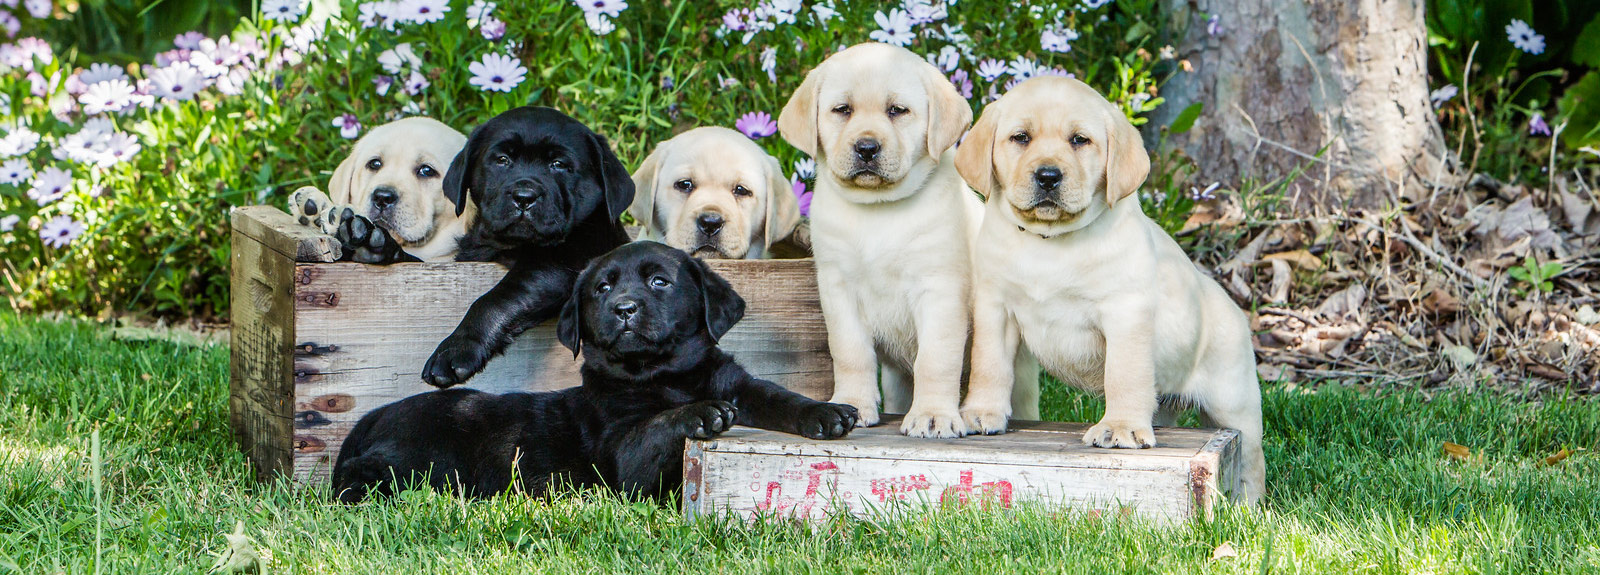 Yellow Lab Dogs For Sale Kentfield Kennels English Labrador Retriever Breeder In